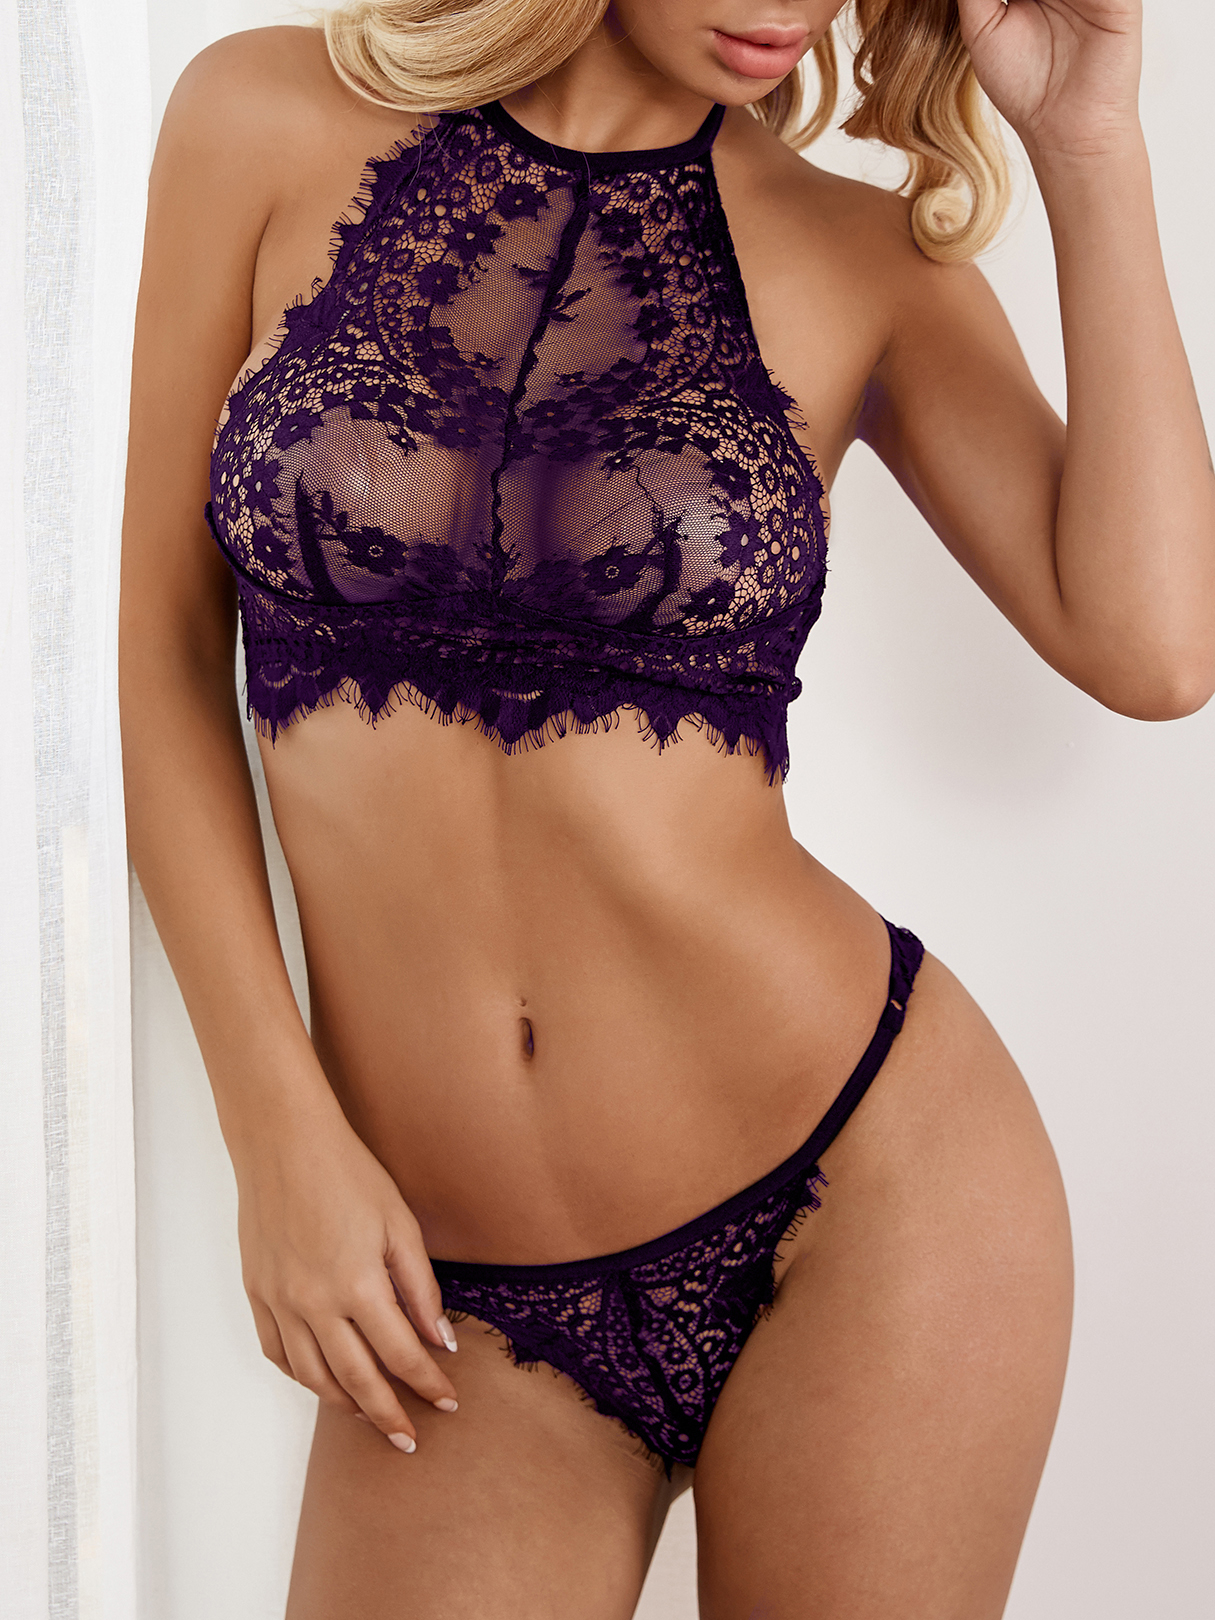 Purple Sexy Delicate See-through Eyelash Trim Halter Lingerie Set without Stockings sexy black lace lingerie set with no falsies